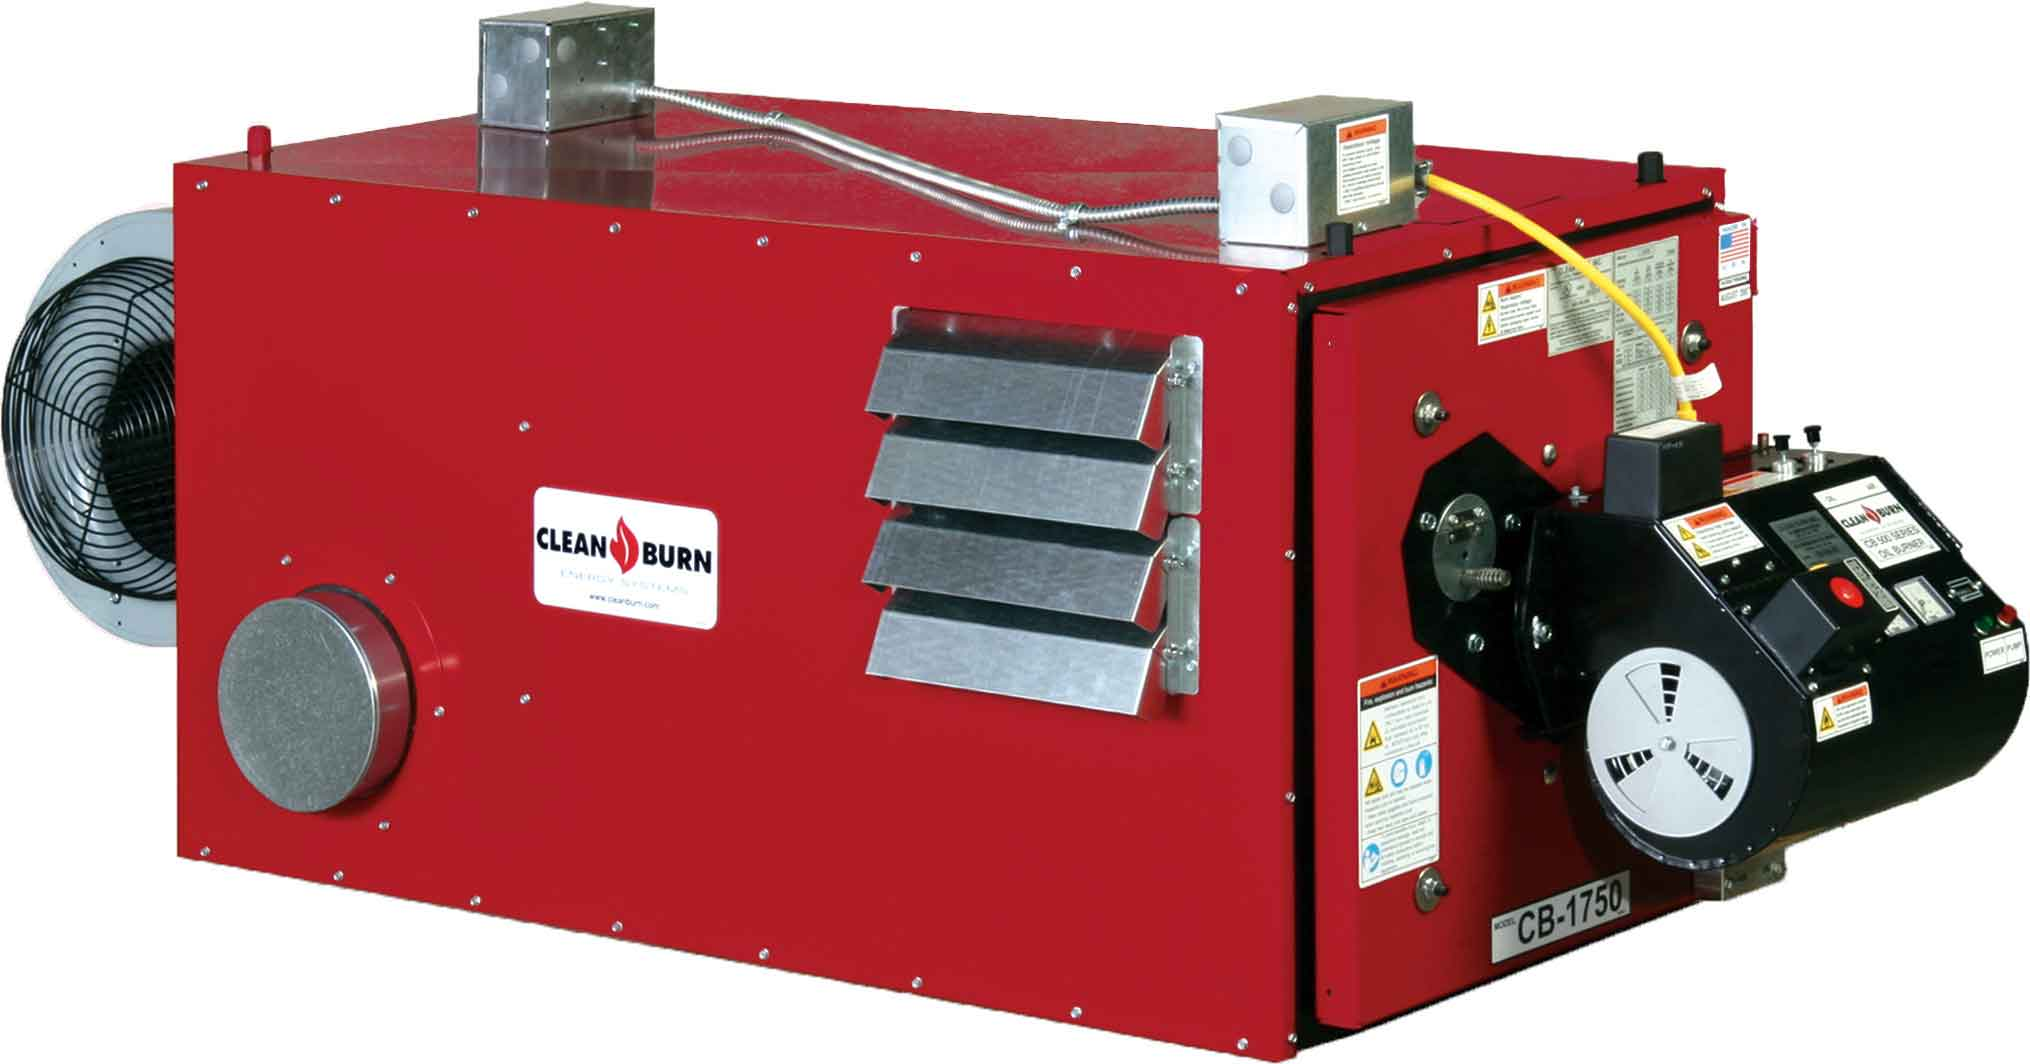 Clean Burn CB-1750 Waste Oil Furnace